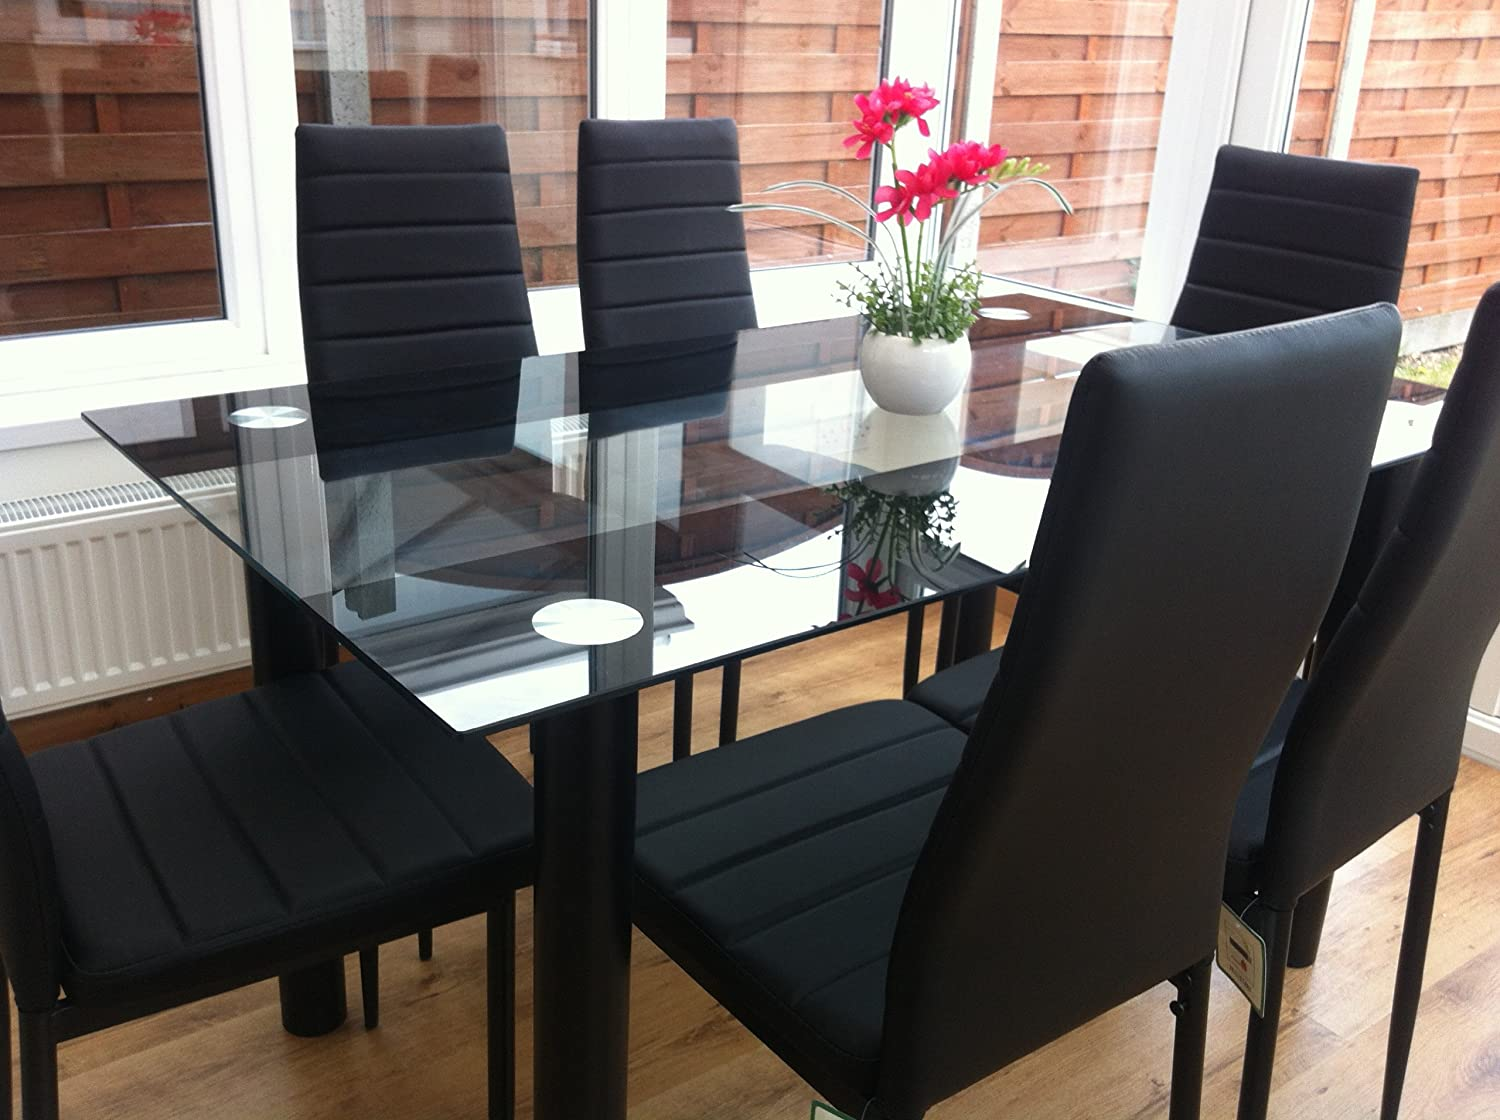 STUNNING GLASS BLACK DINING TABLE SET AND 6 FAUX LEATHER CHAIRS Amazoncouk Kitchen Home